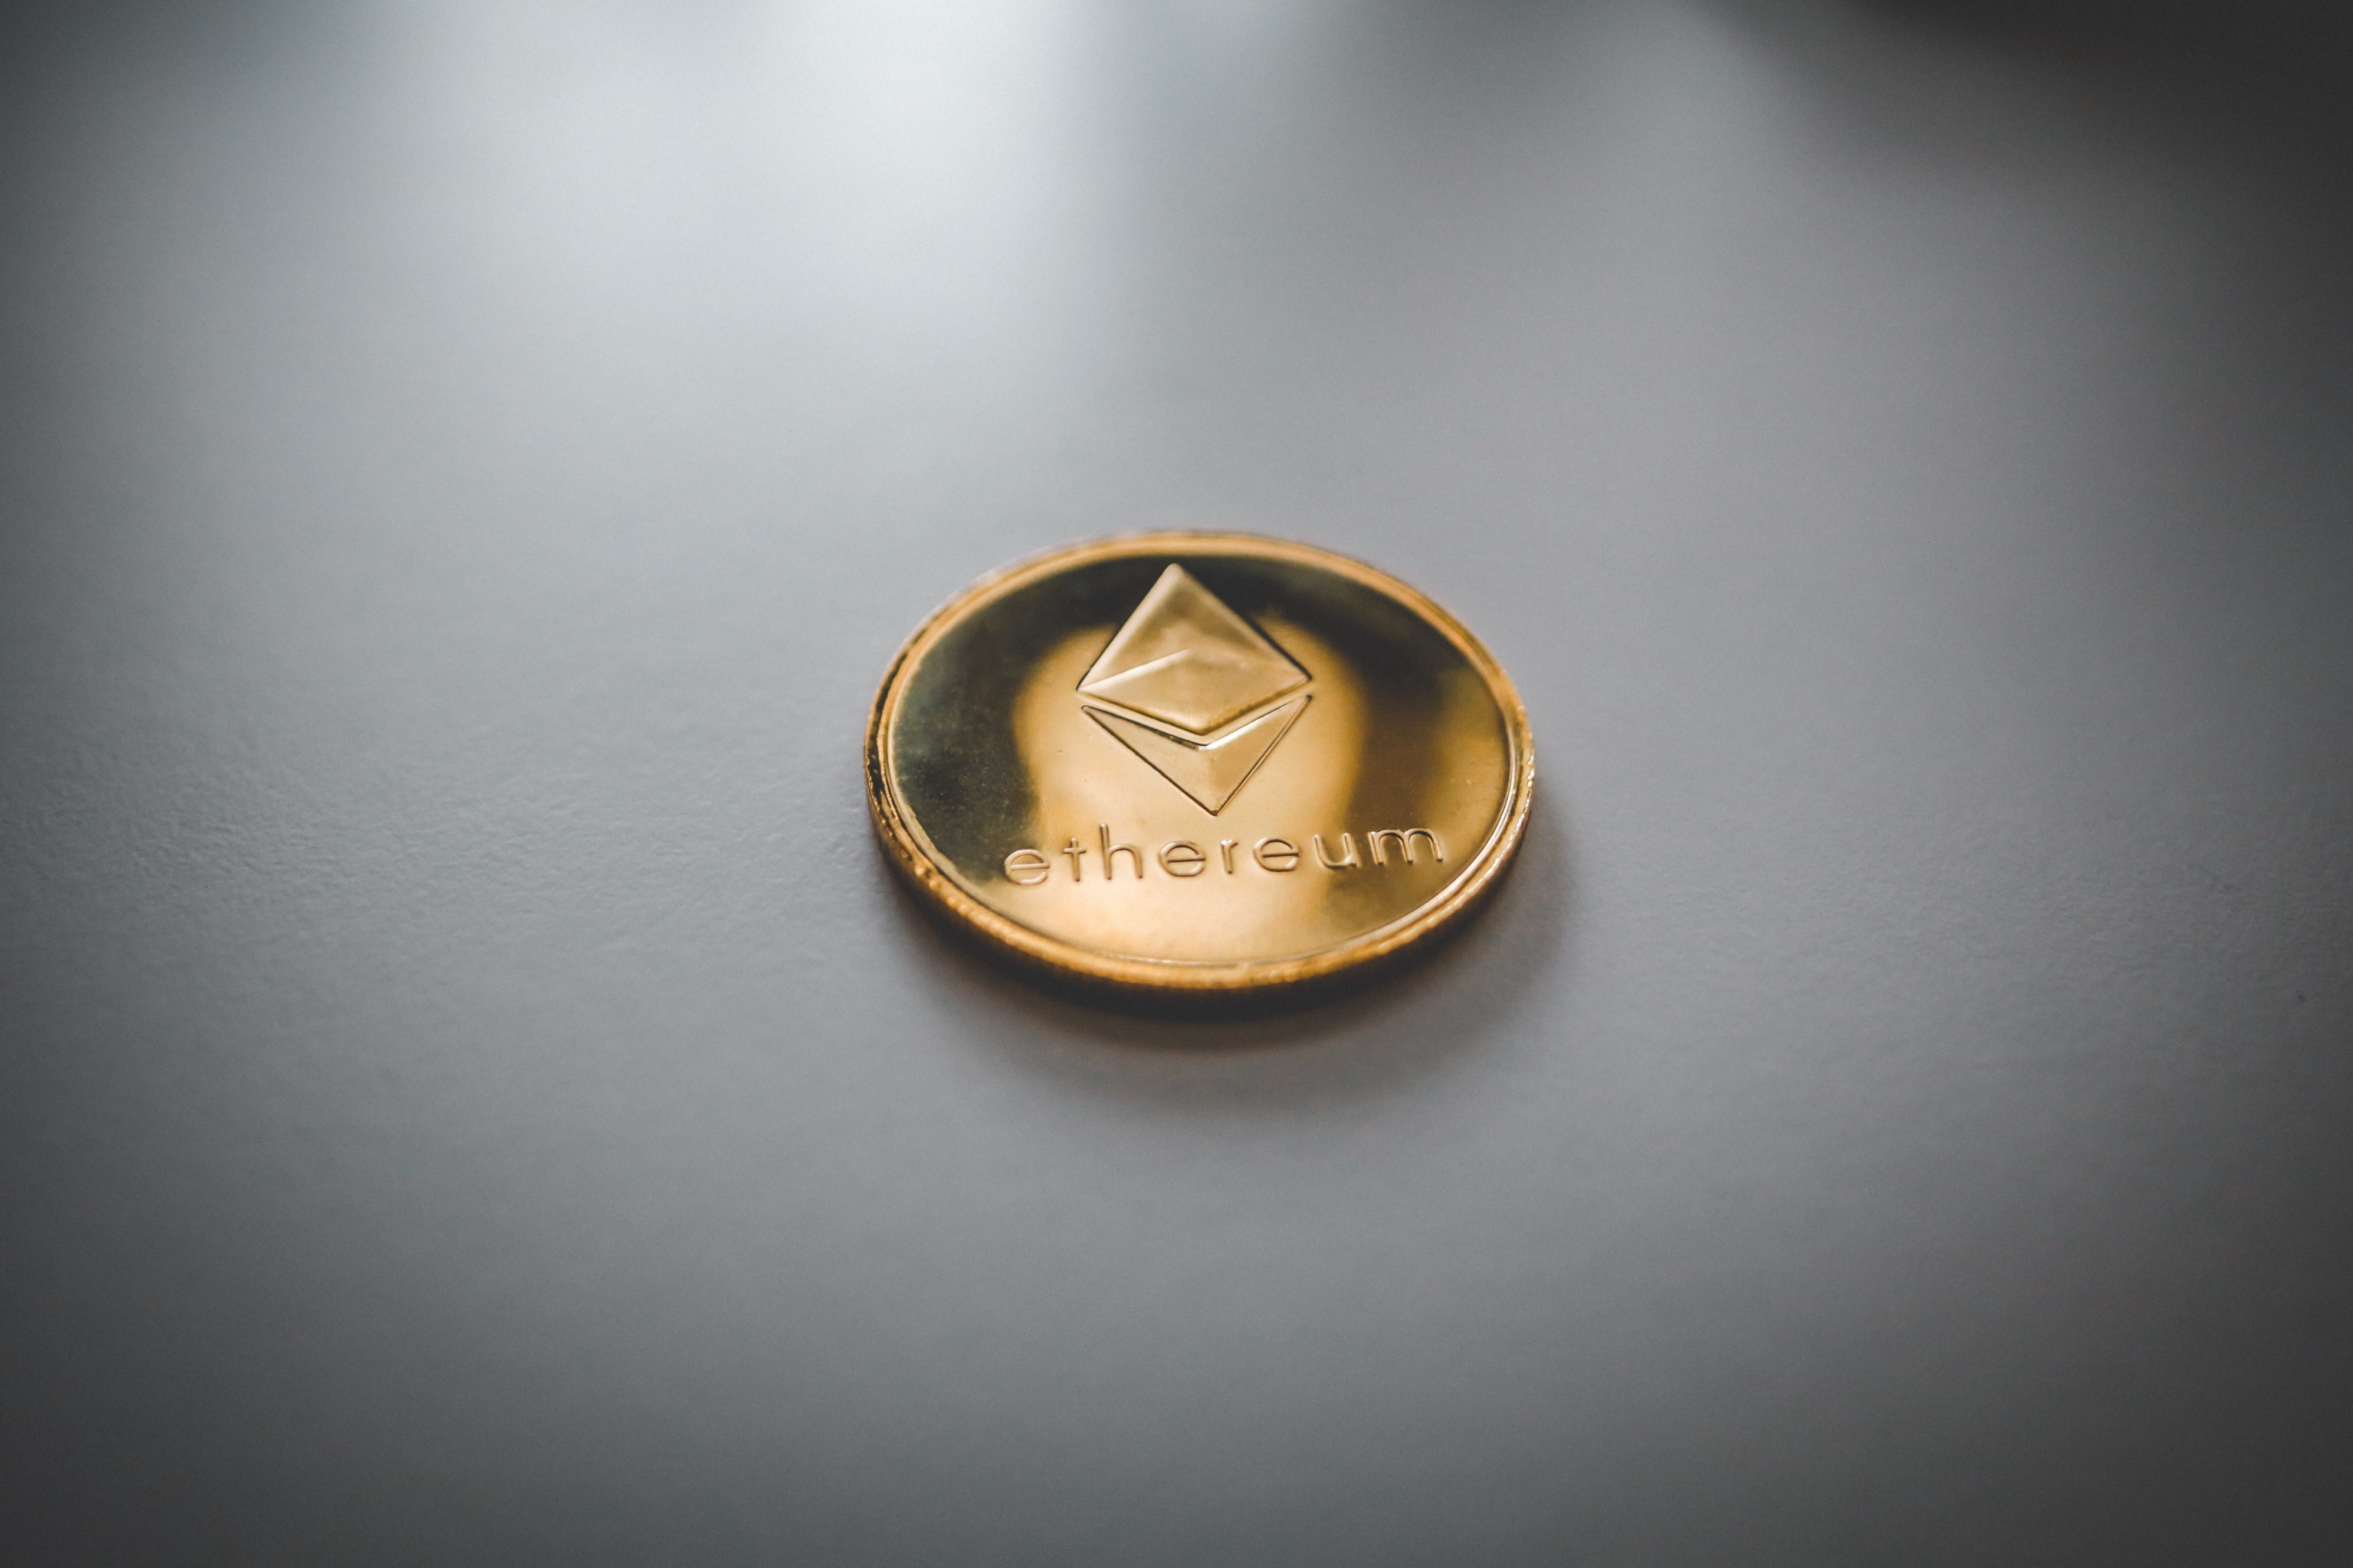 """A coin with the word """"ethereum"""" on it"""